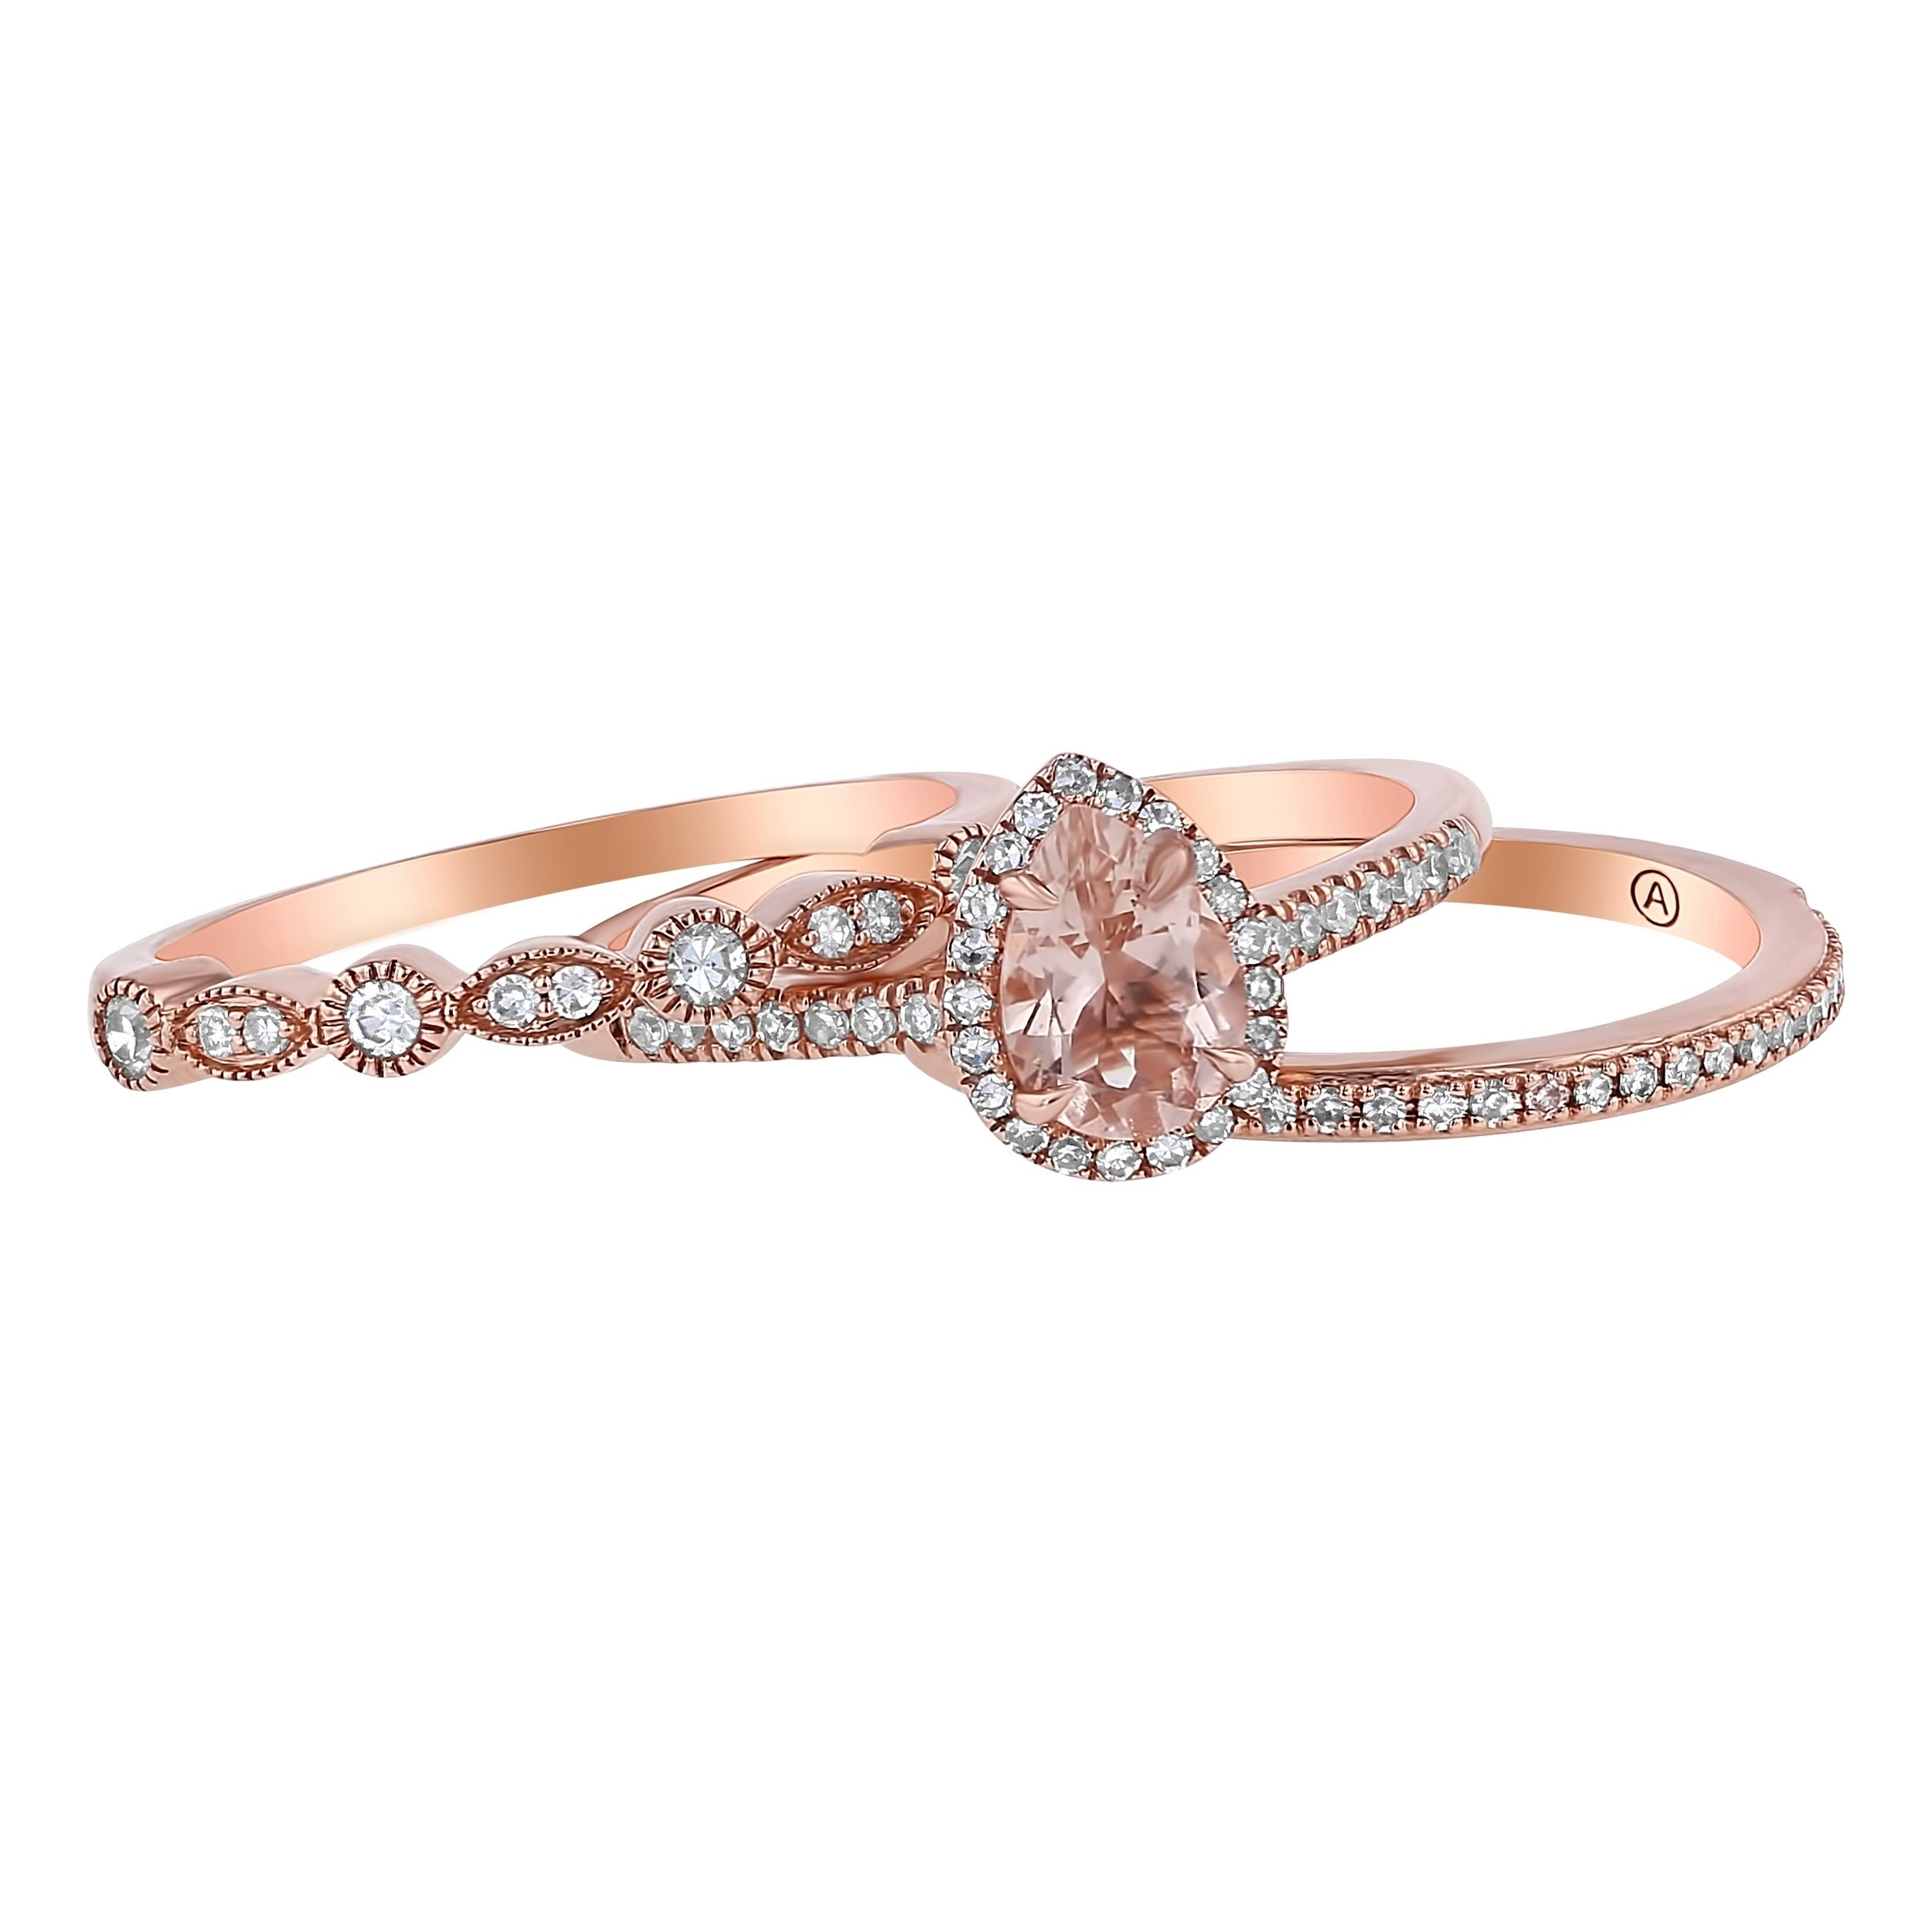 Merveilleux 14k Rose Gold 1/3ct TDW Pear Morganite And Diamond Halo 3 Ring Wedding Set    Free Shipping Today   Overstock.com   24906665